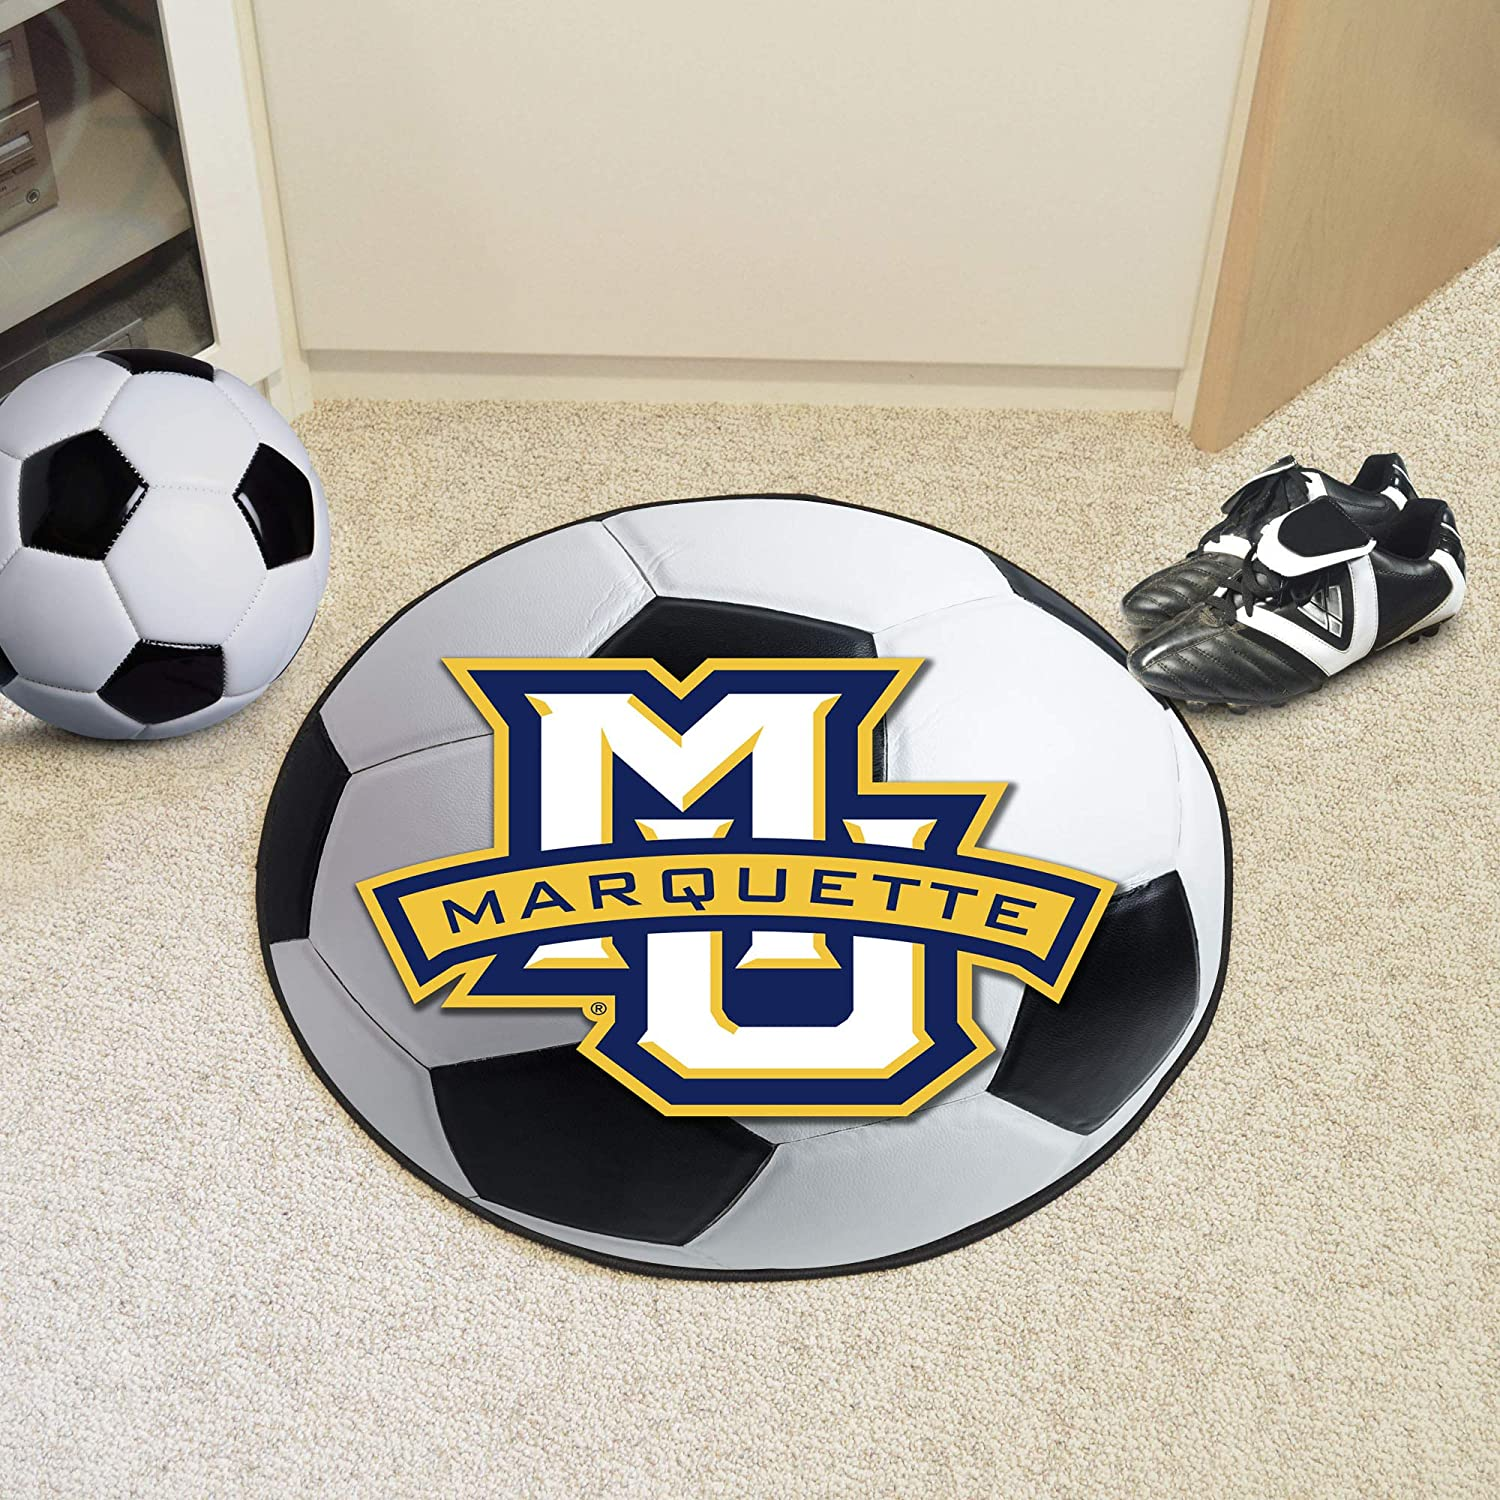 FANMATS NCAA Marquette University Golden Eagles Nylon Face Basketball Rug